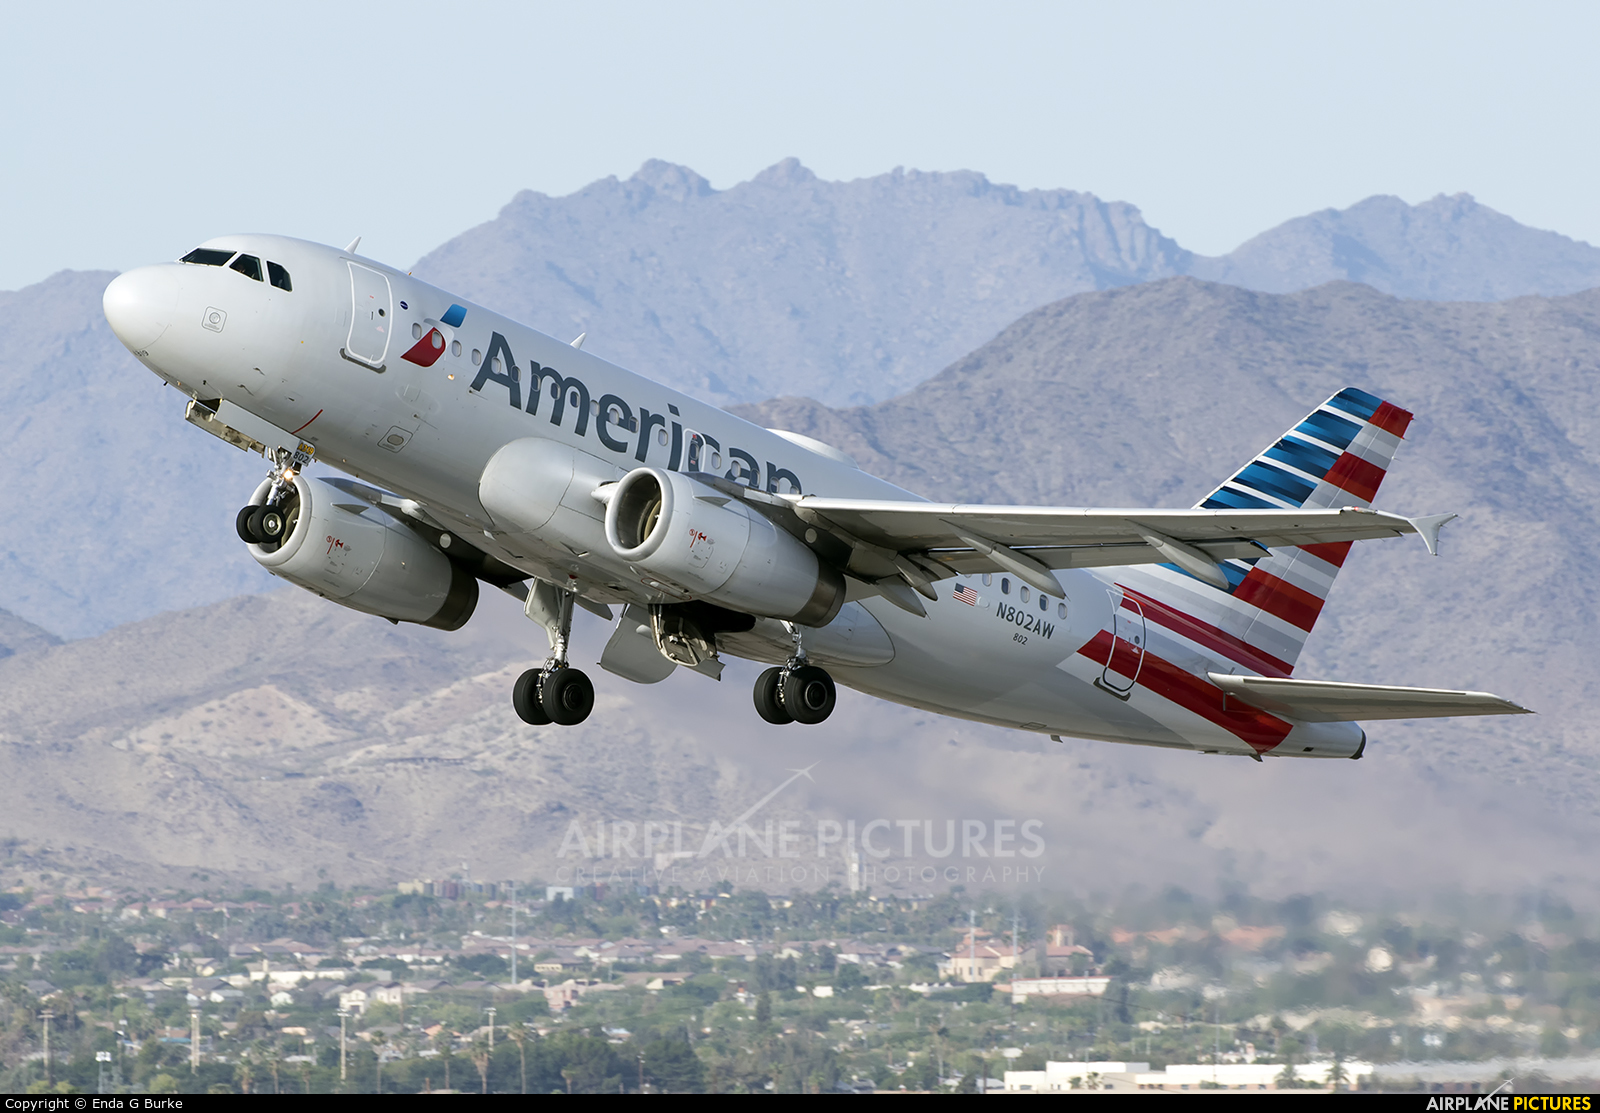 American Airlines N802AW aircraft at Phoenix - Sky Harbor Intl